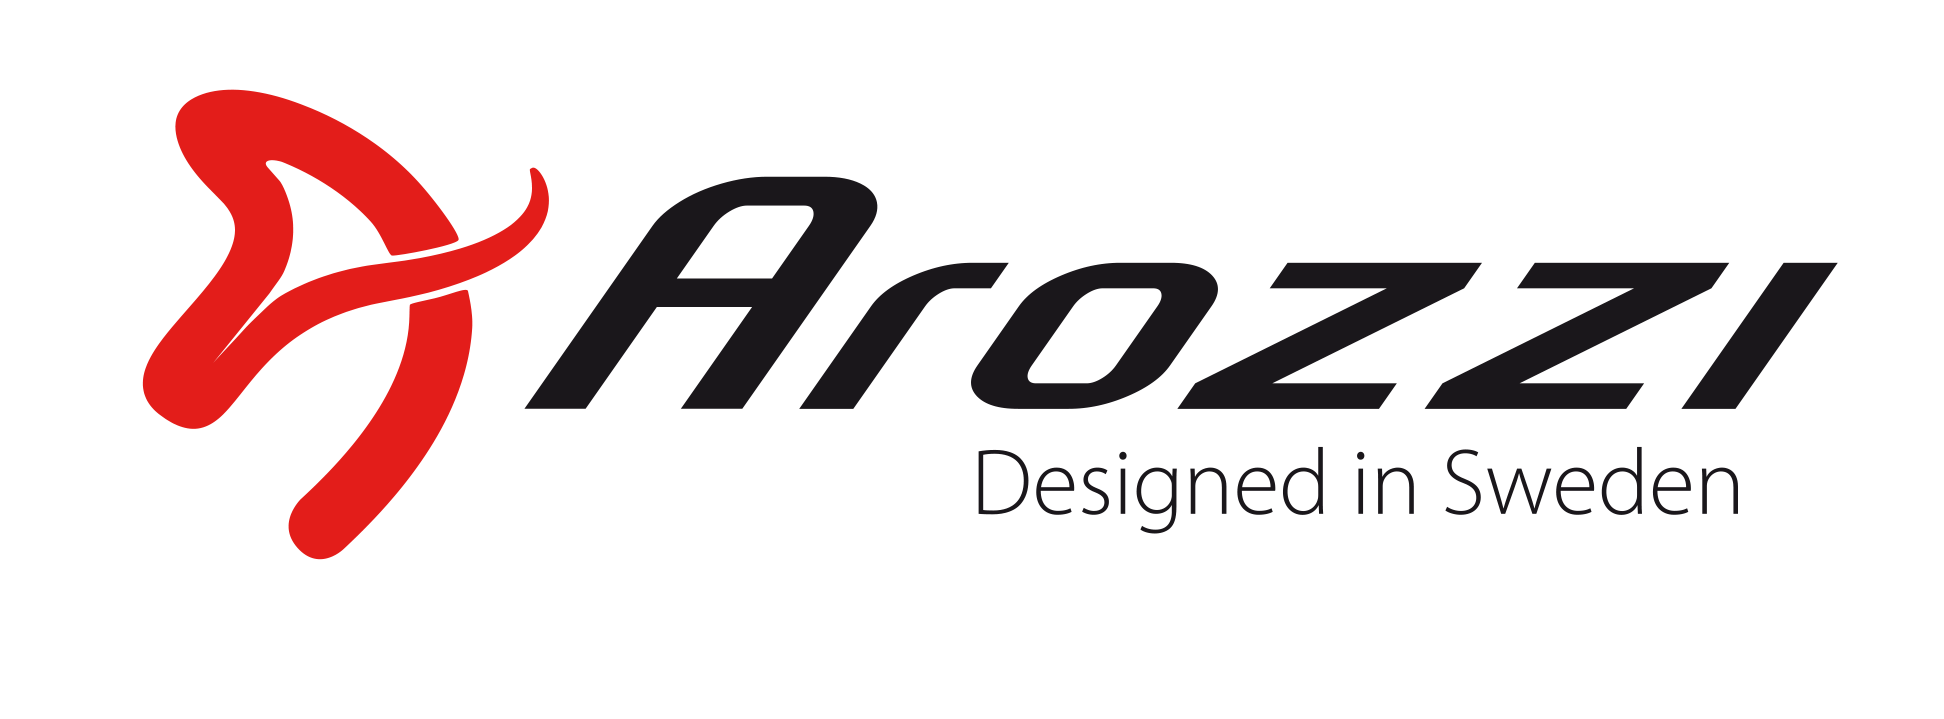 New Arozzi Arena Gaming Desk Available Play3r